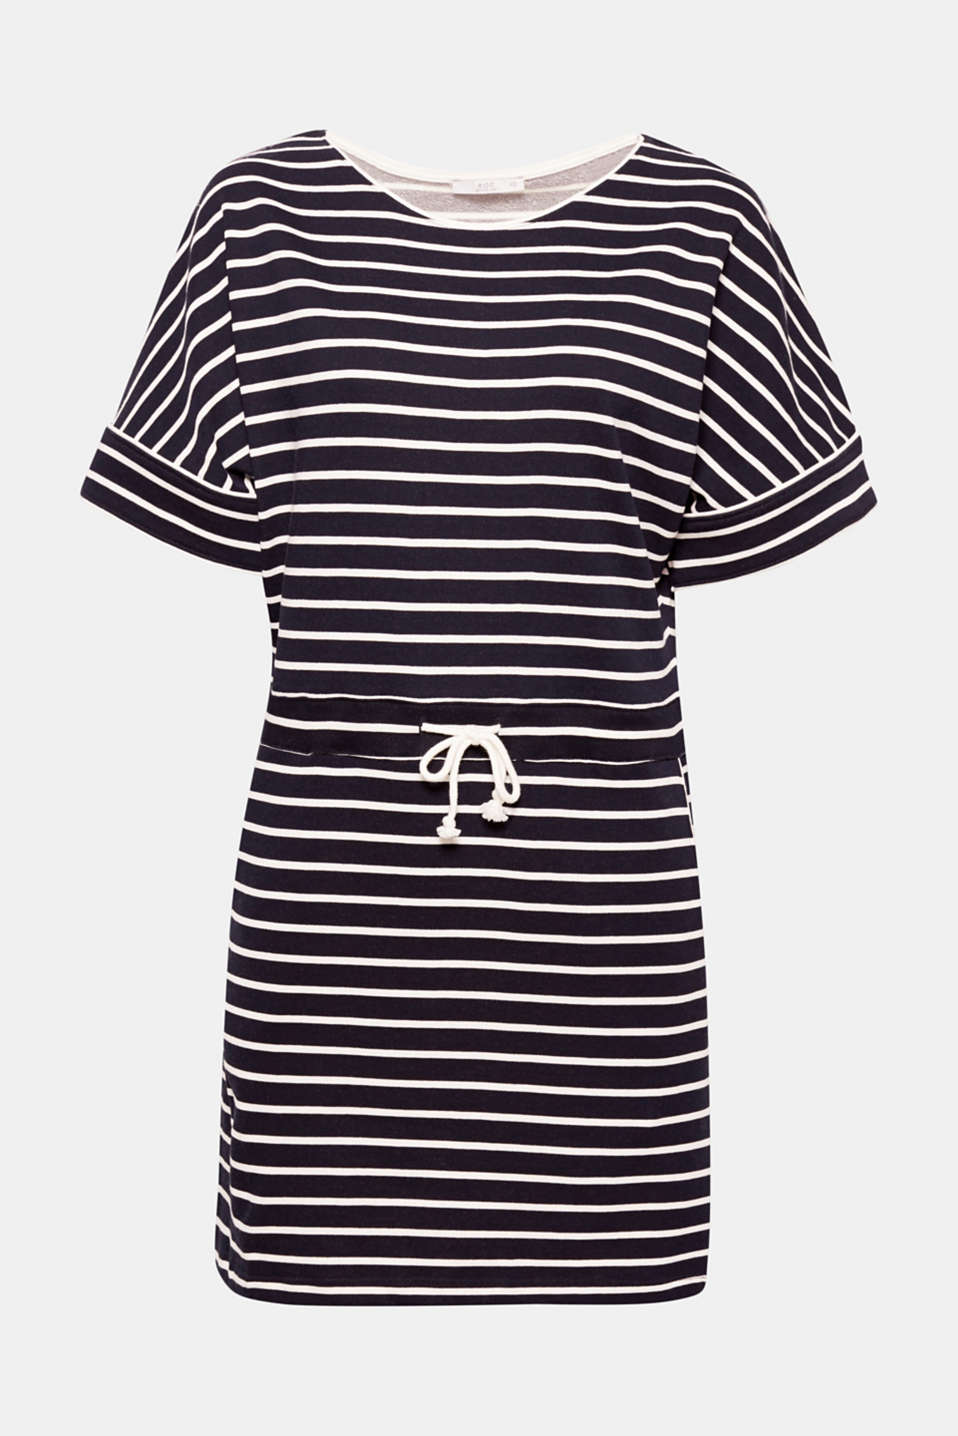 This cotton sweatshirt dress with an adjustable drawstring waist and a fresh striped pattern combines high comfort with relaxed style.